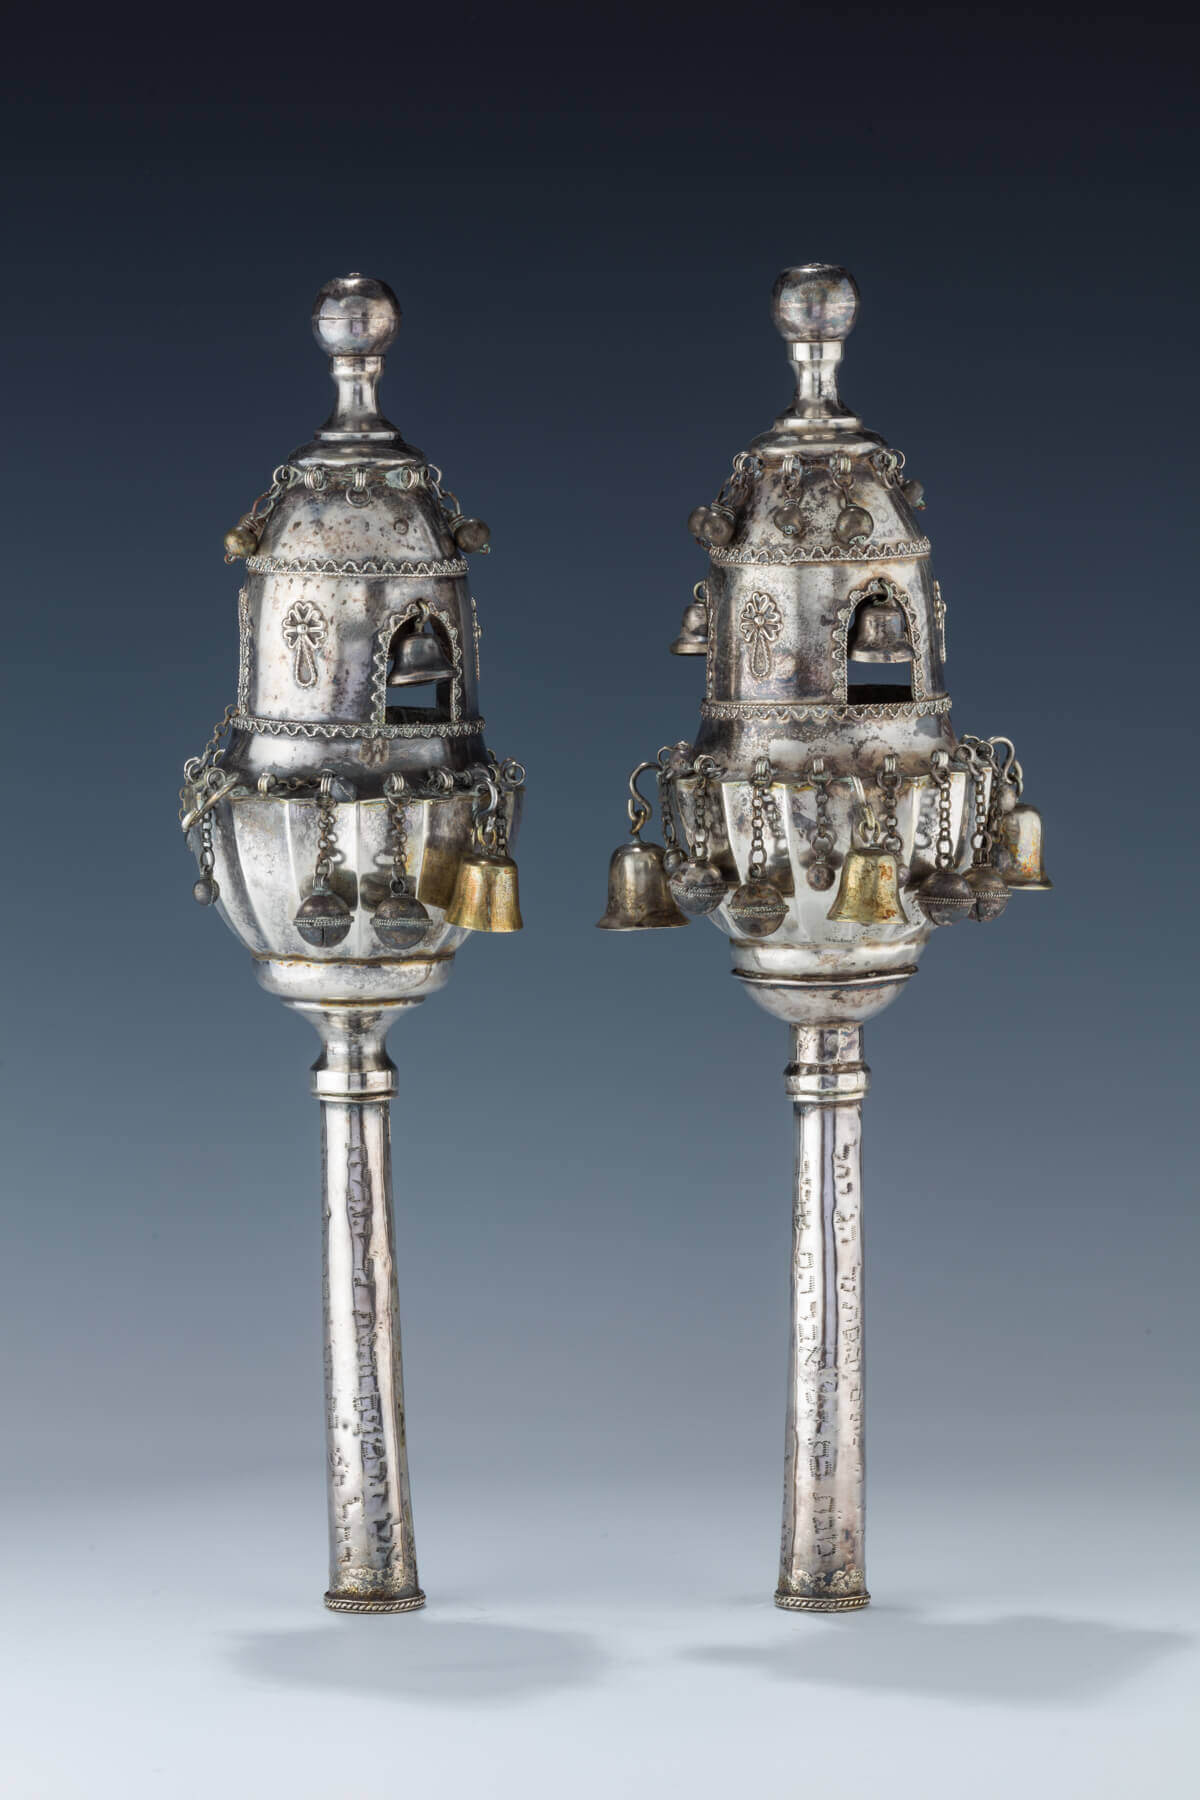 047. A PAIR OF SILVER TORAH FINIALS